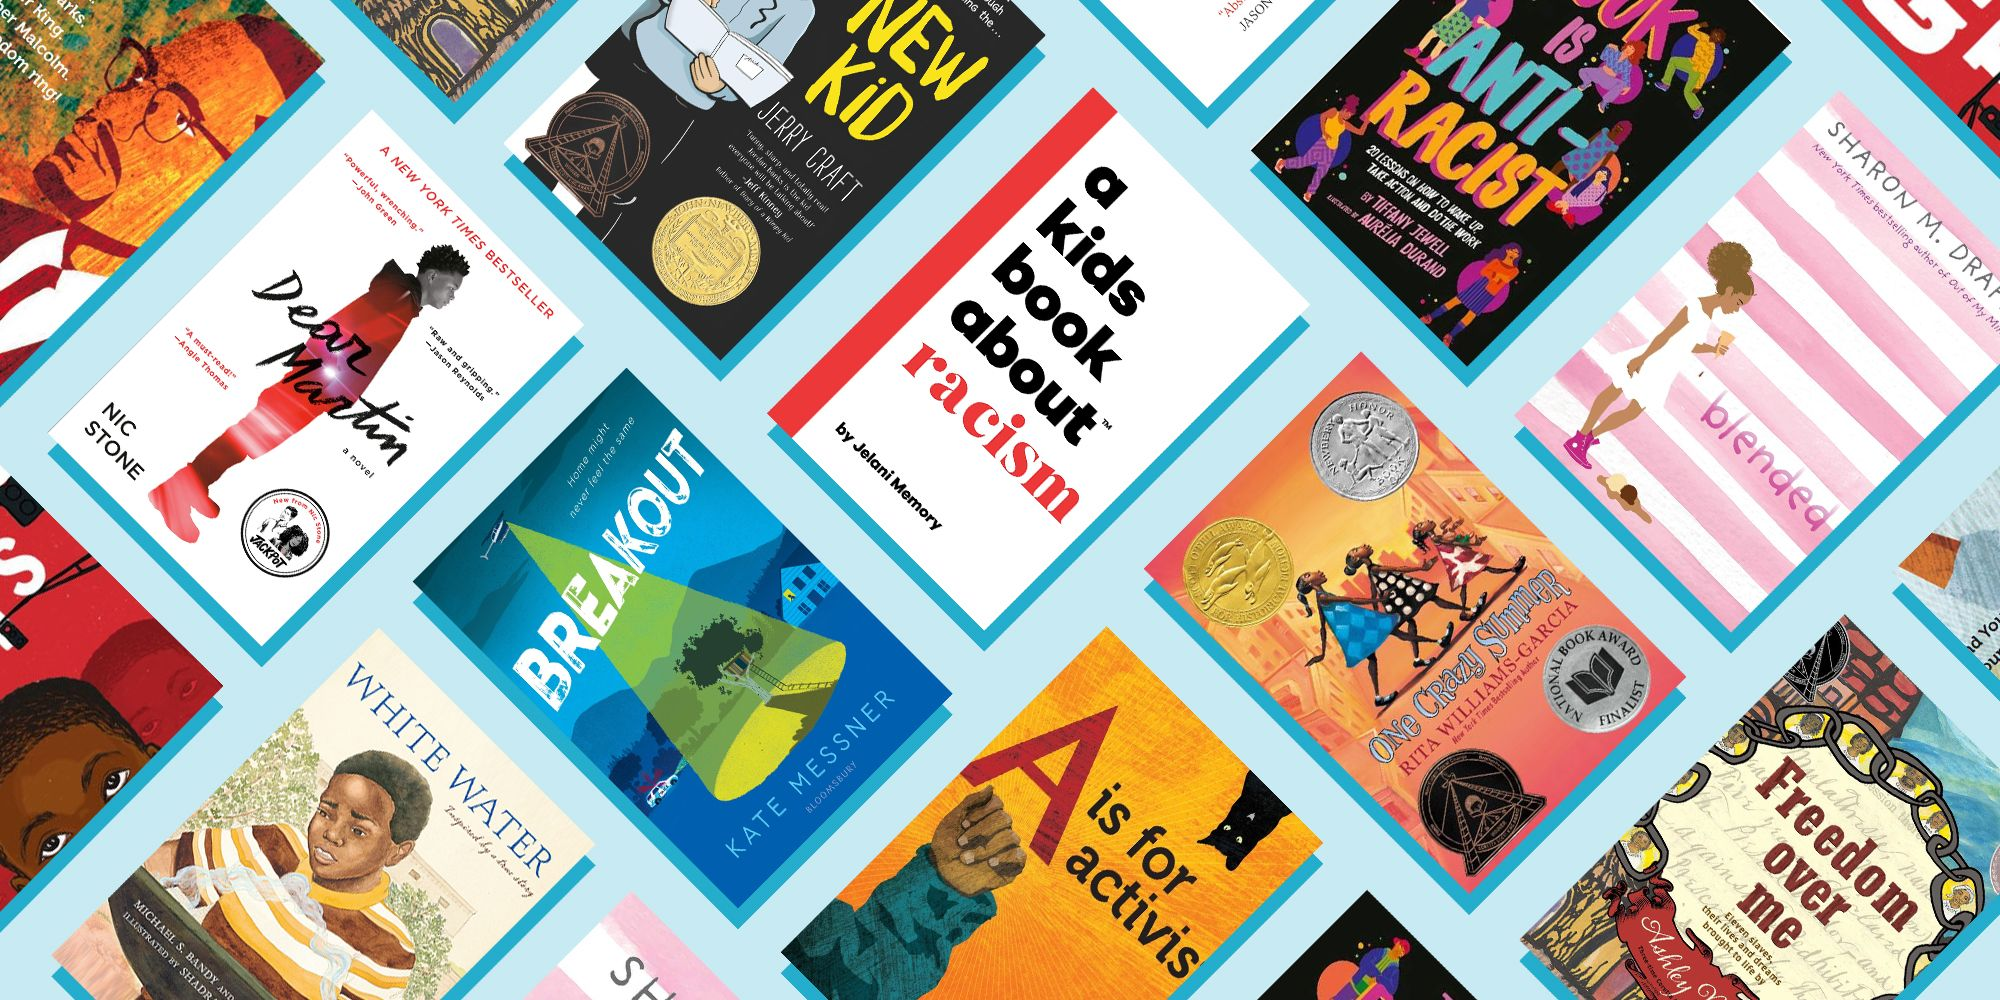 15 Books About Race and Racism for Kids to Start the Dialogue at Home